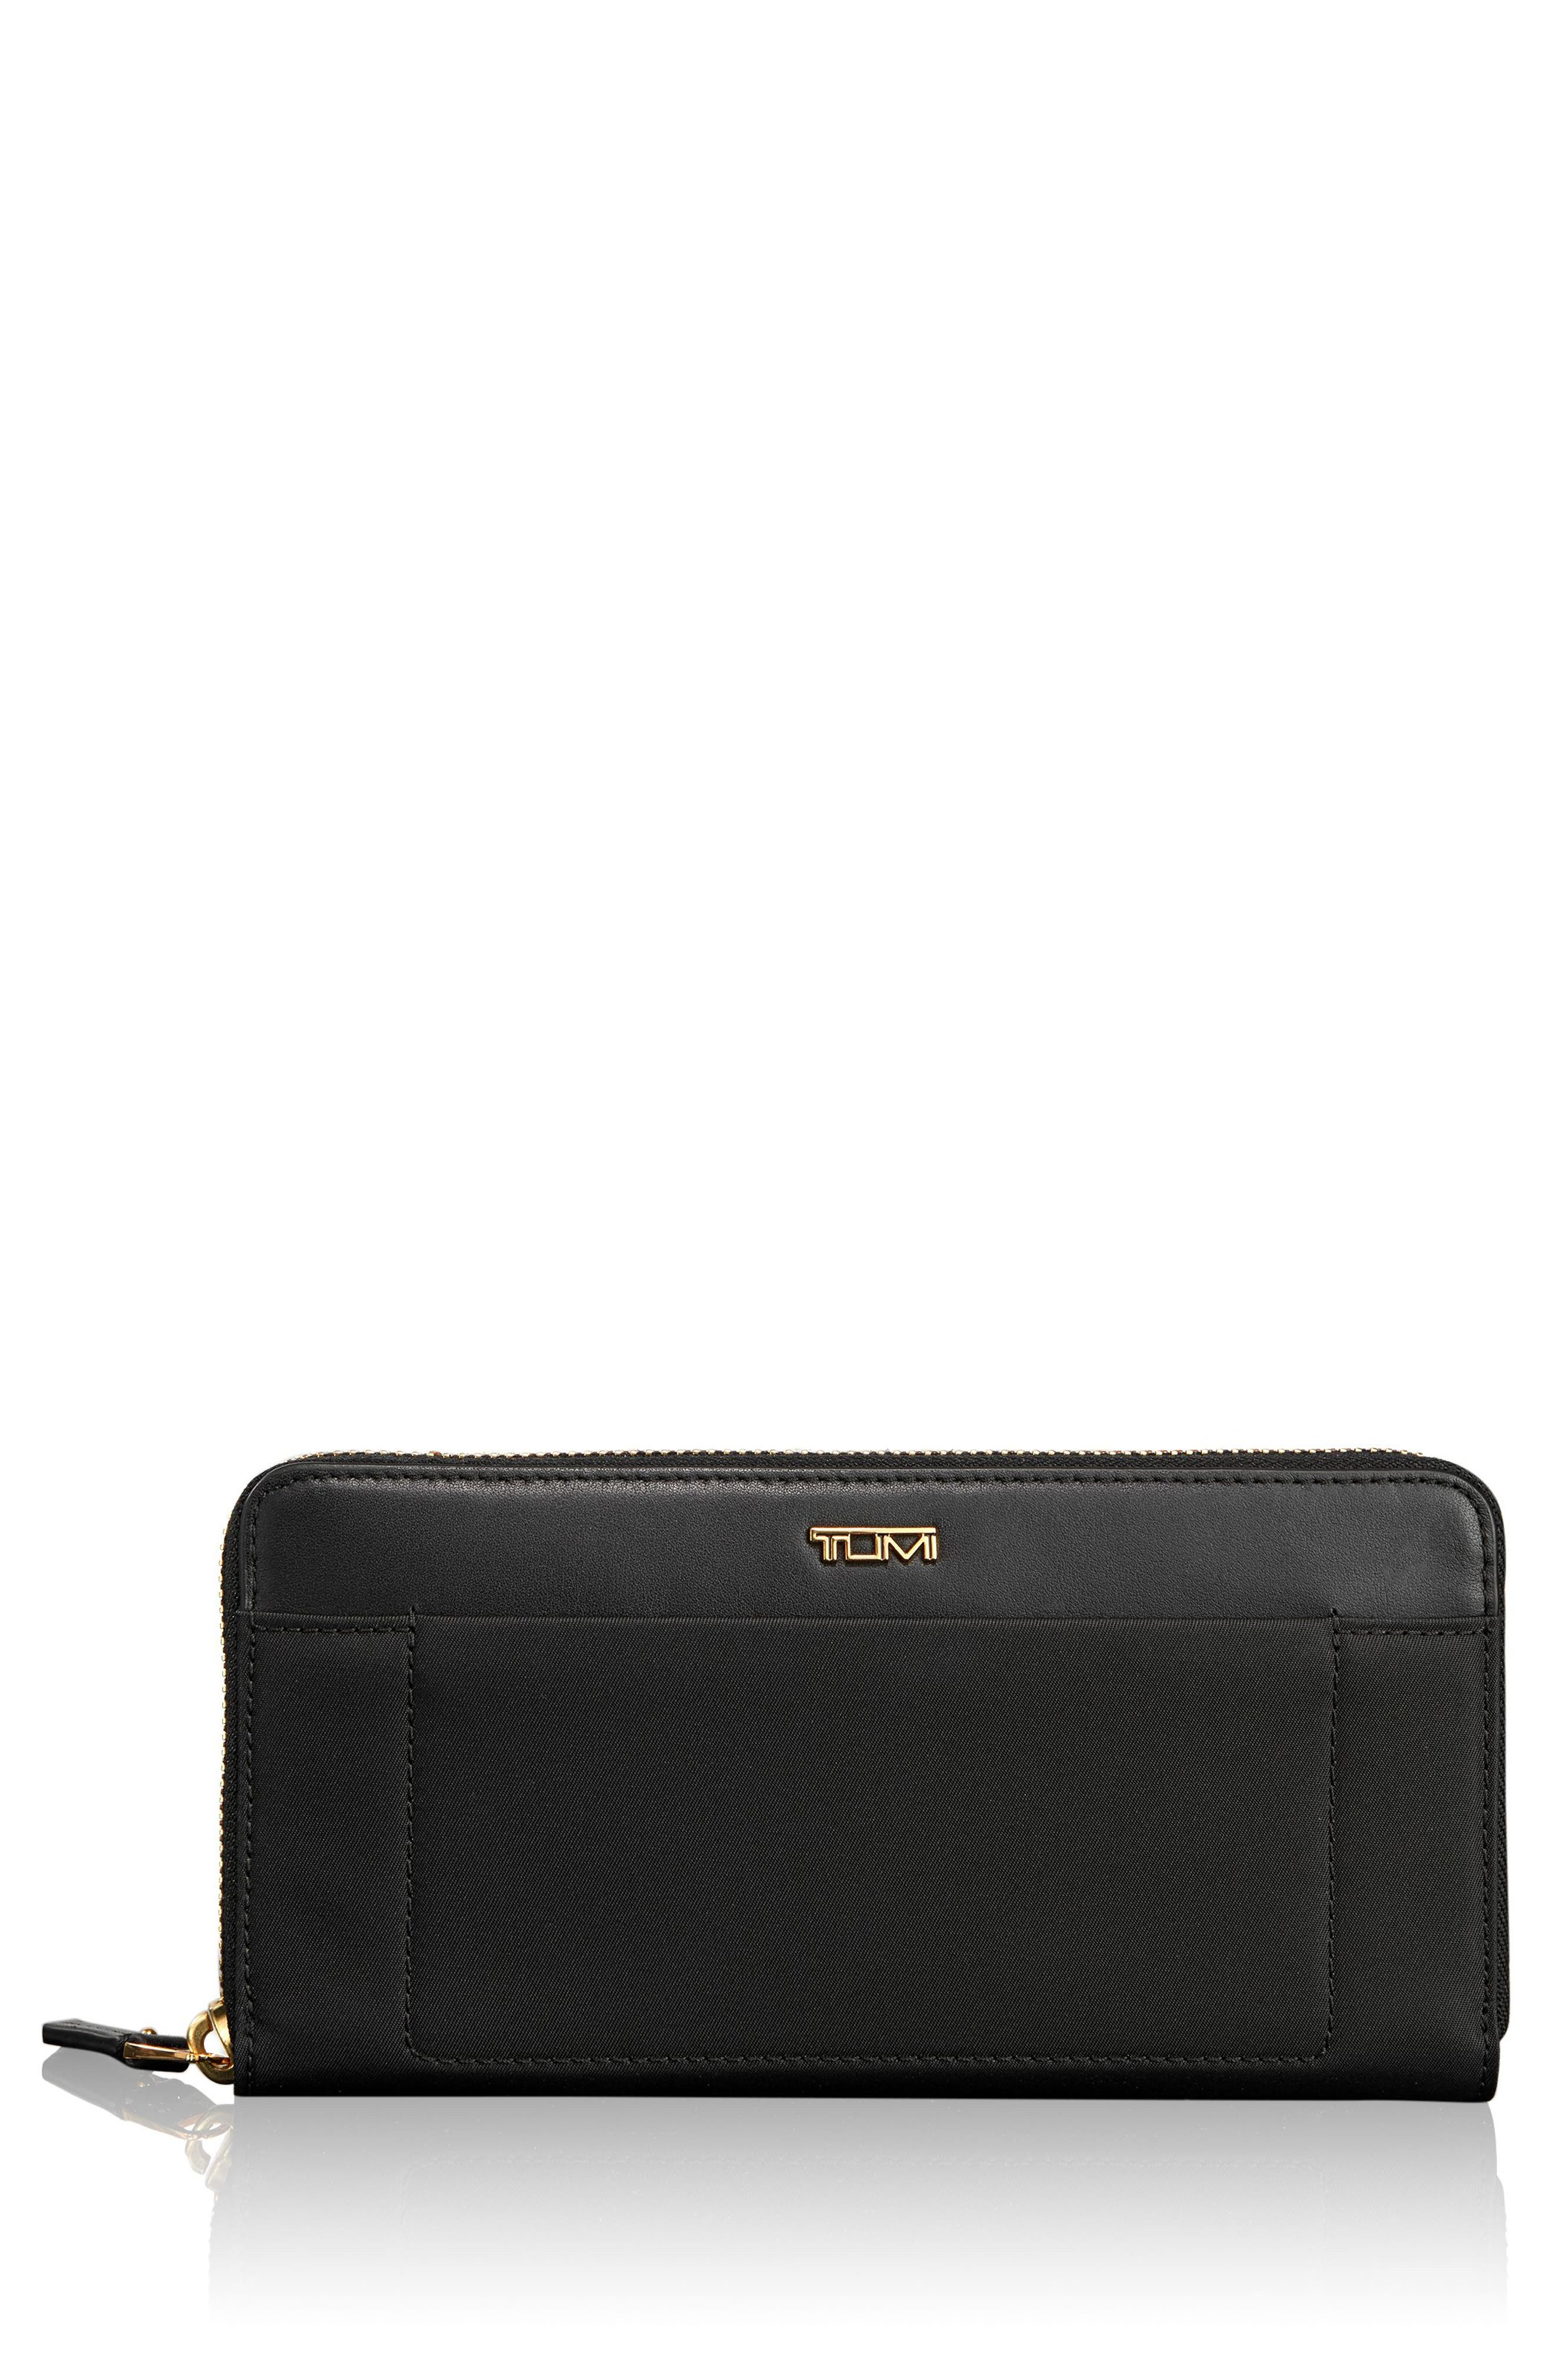 Alternate Image 1 Selected - Tumi Continental Zip Tech Wallet